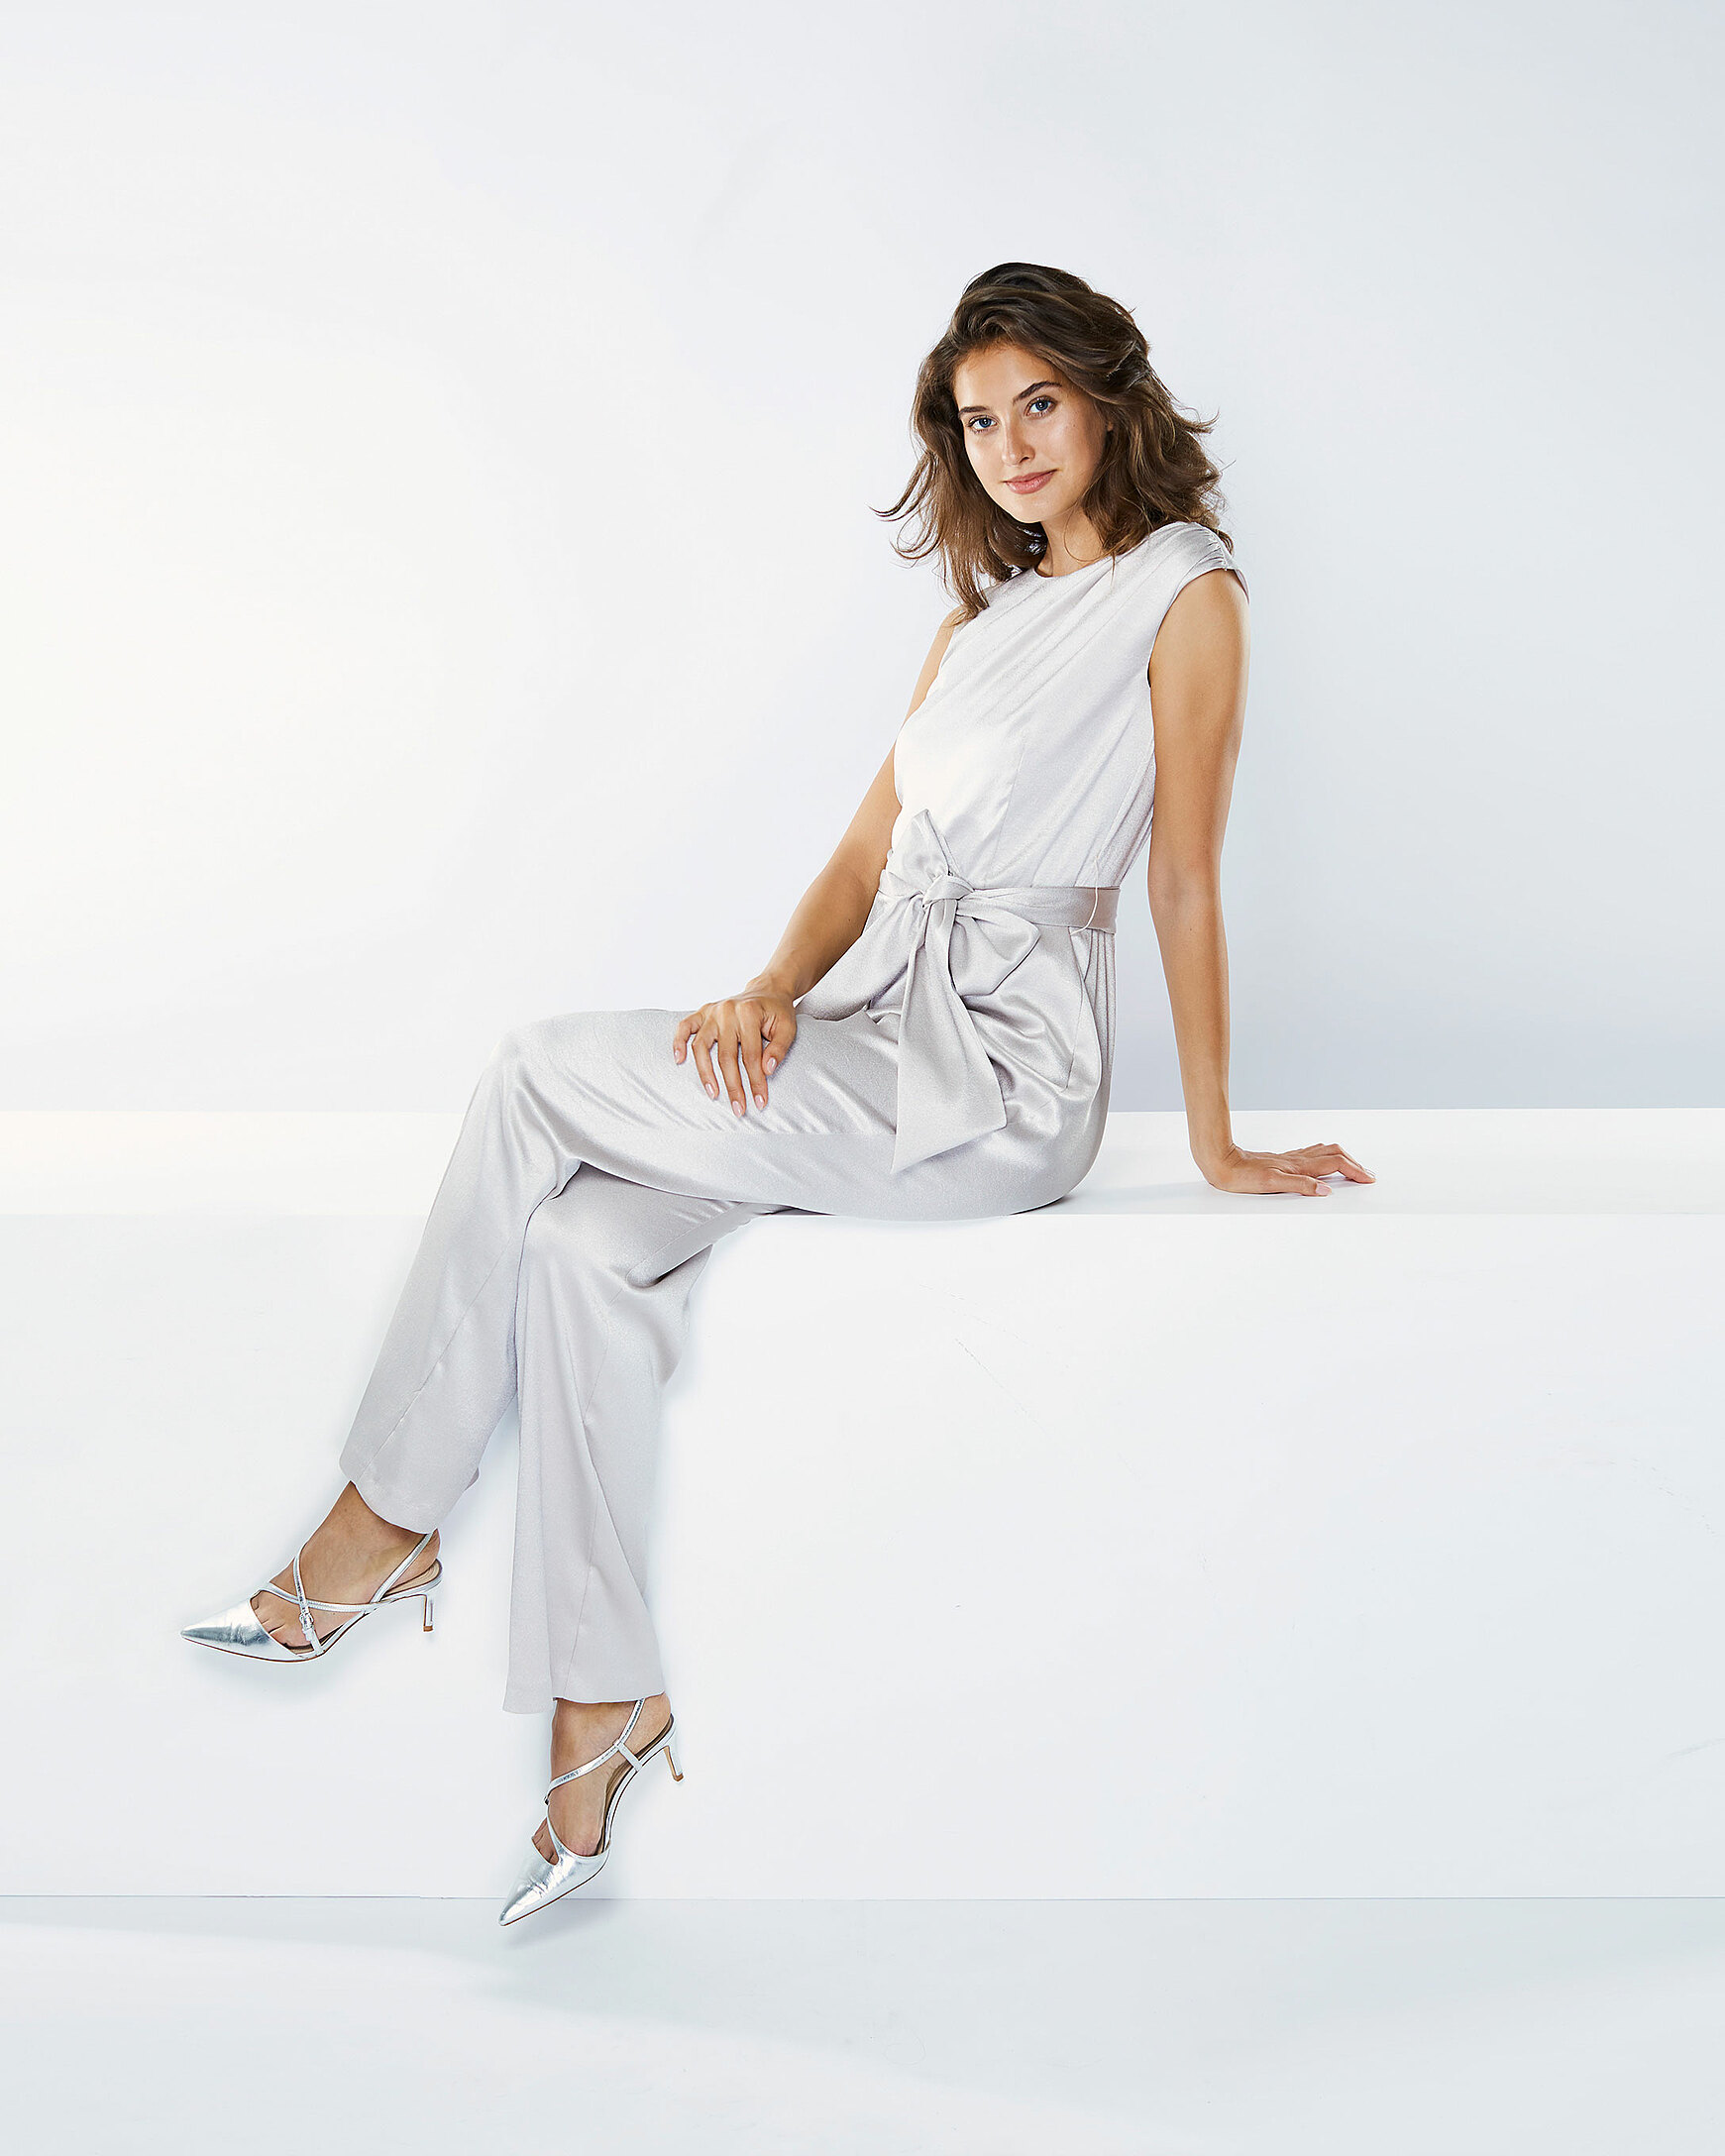 A brown hair model in a silver overall sits in a white setting